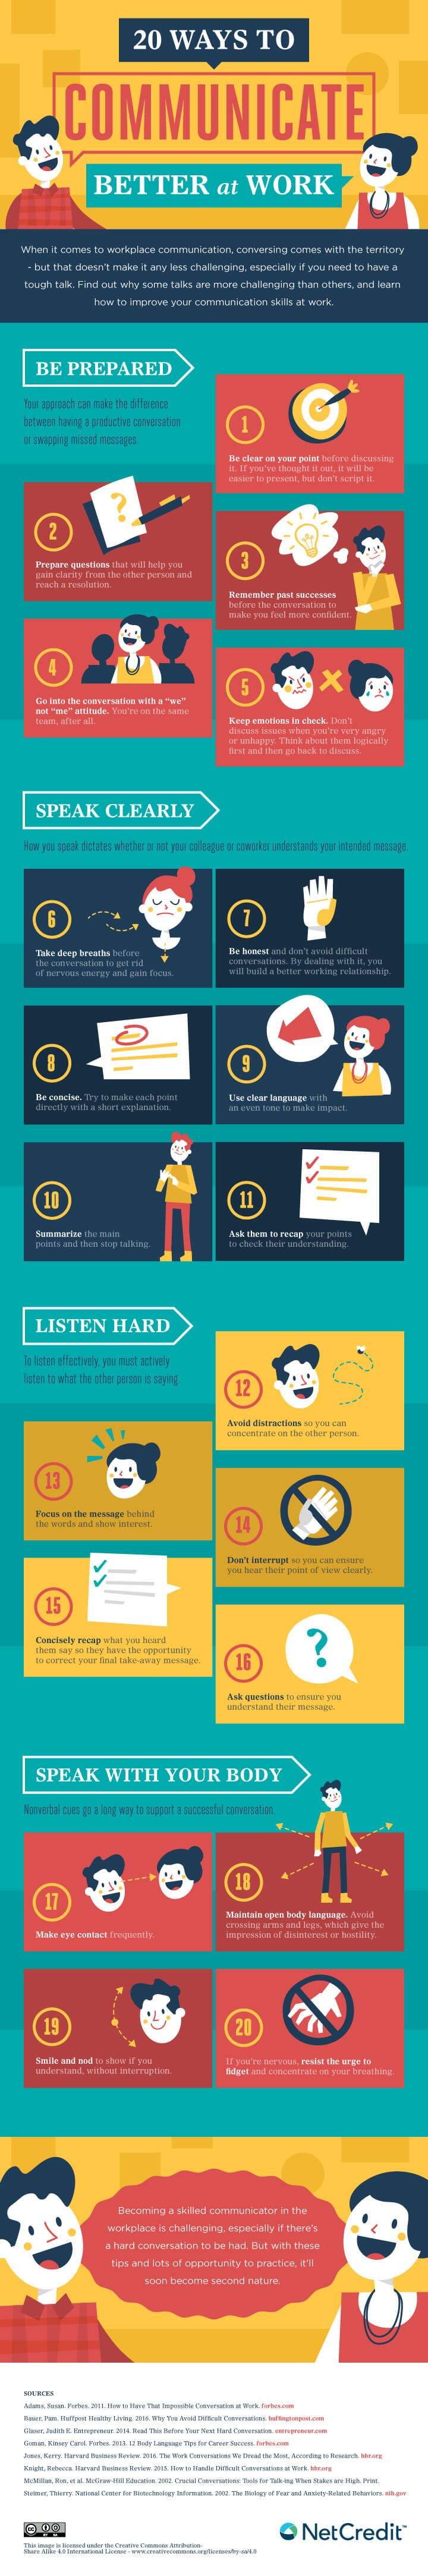 20-Ways-to-Communicate-Better-at-Work-DV2